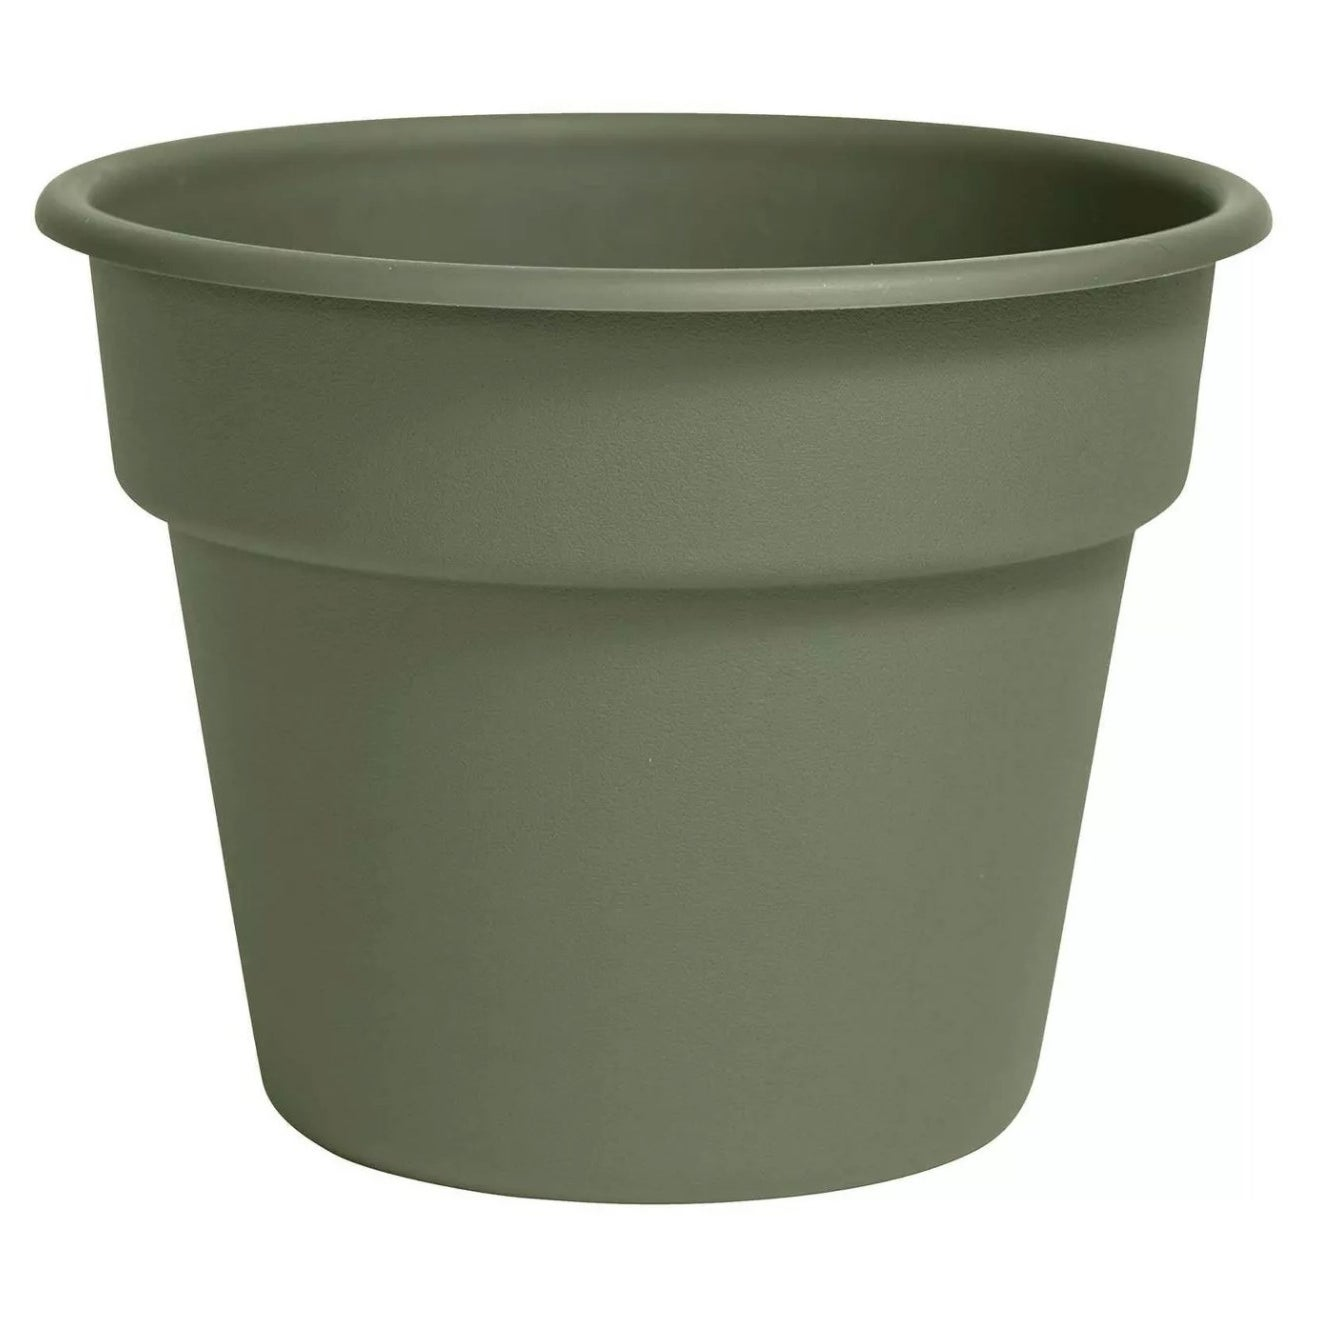 The large green pot